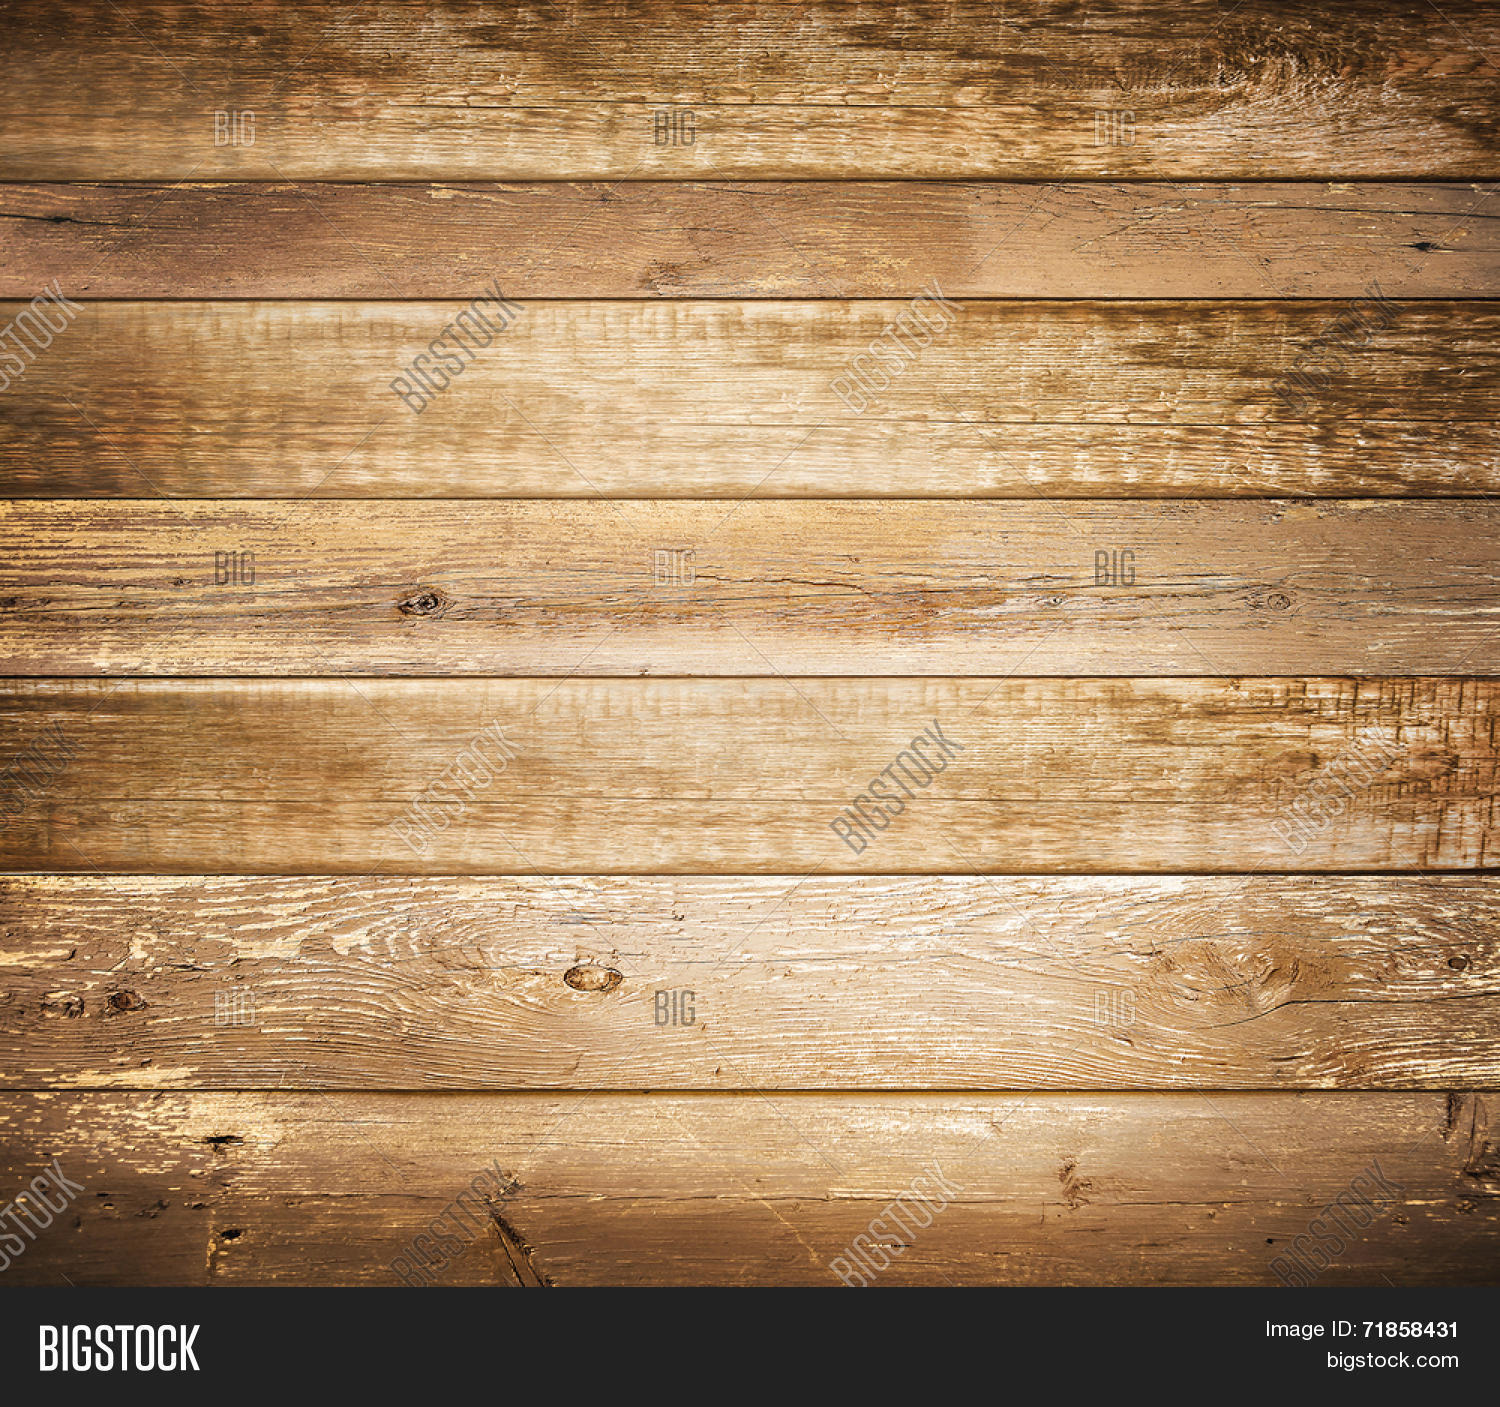 Background Brown Old Natural Wood Image & Photo | Bigstock